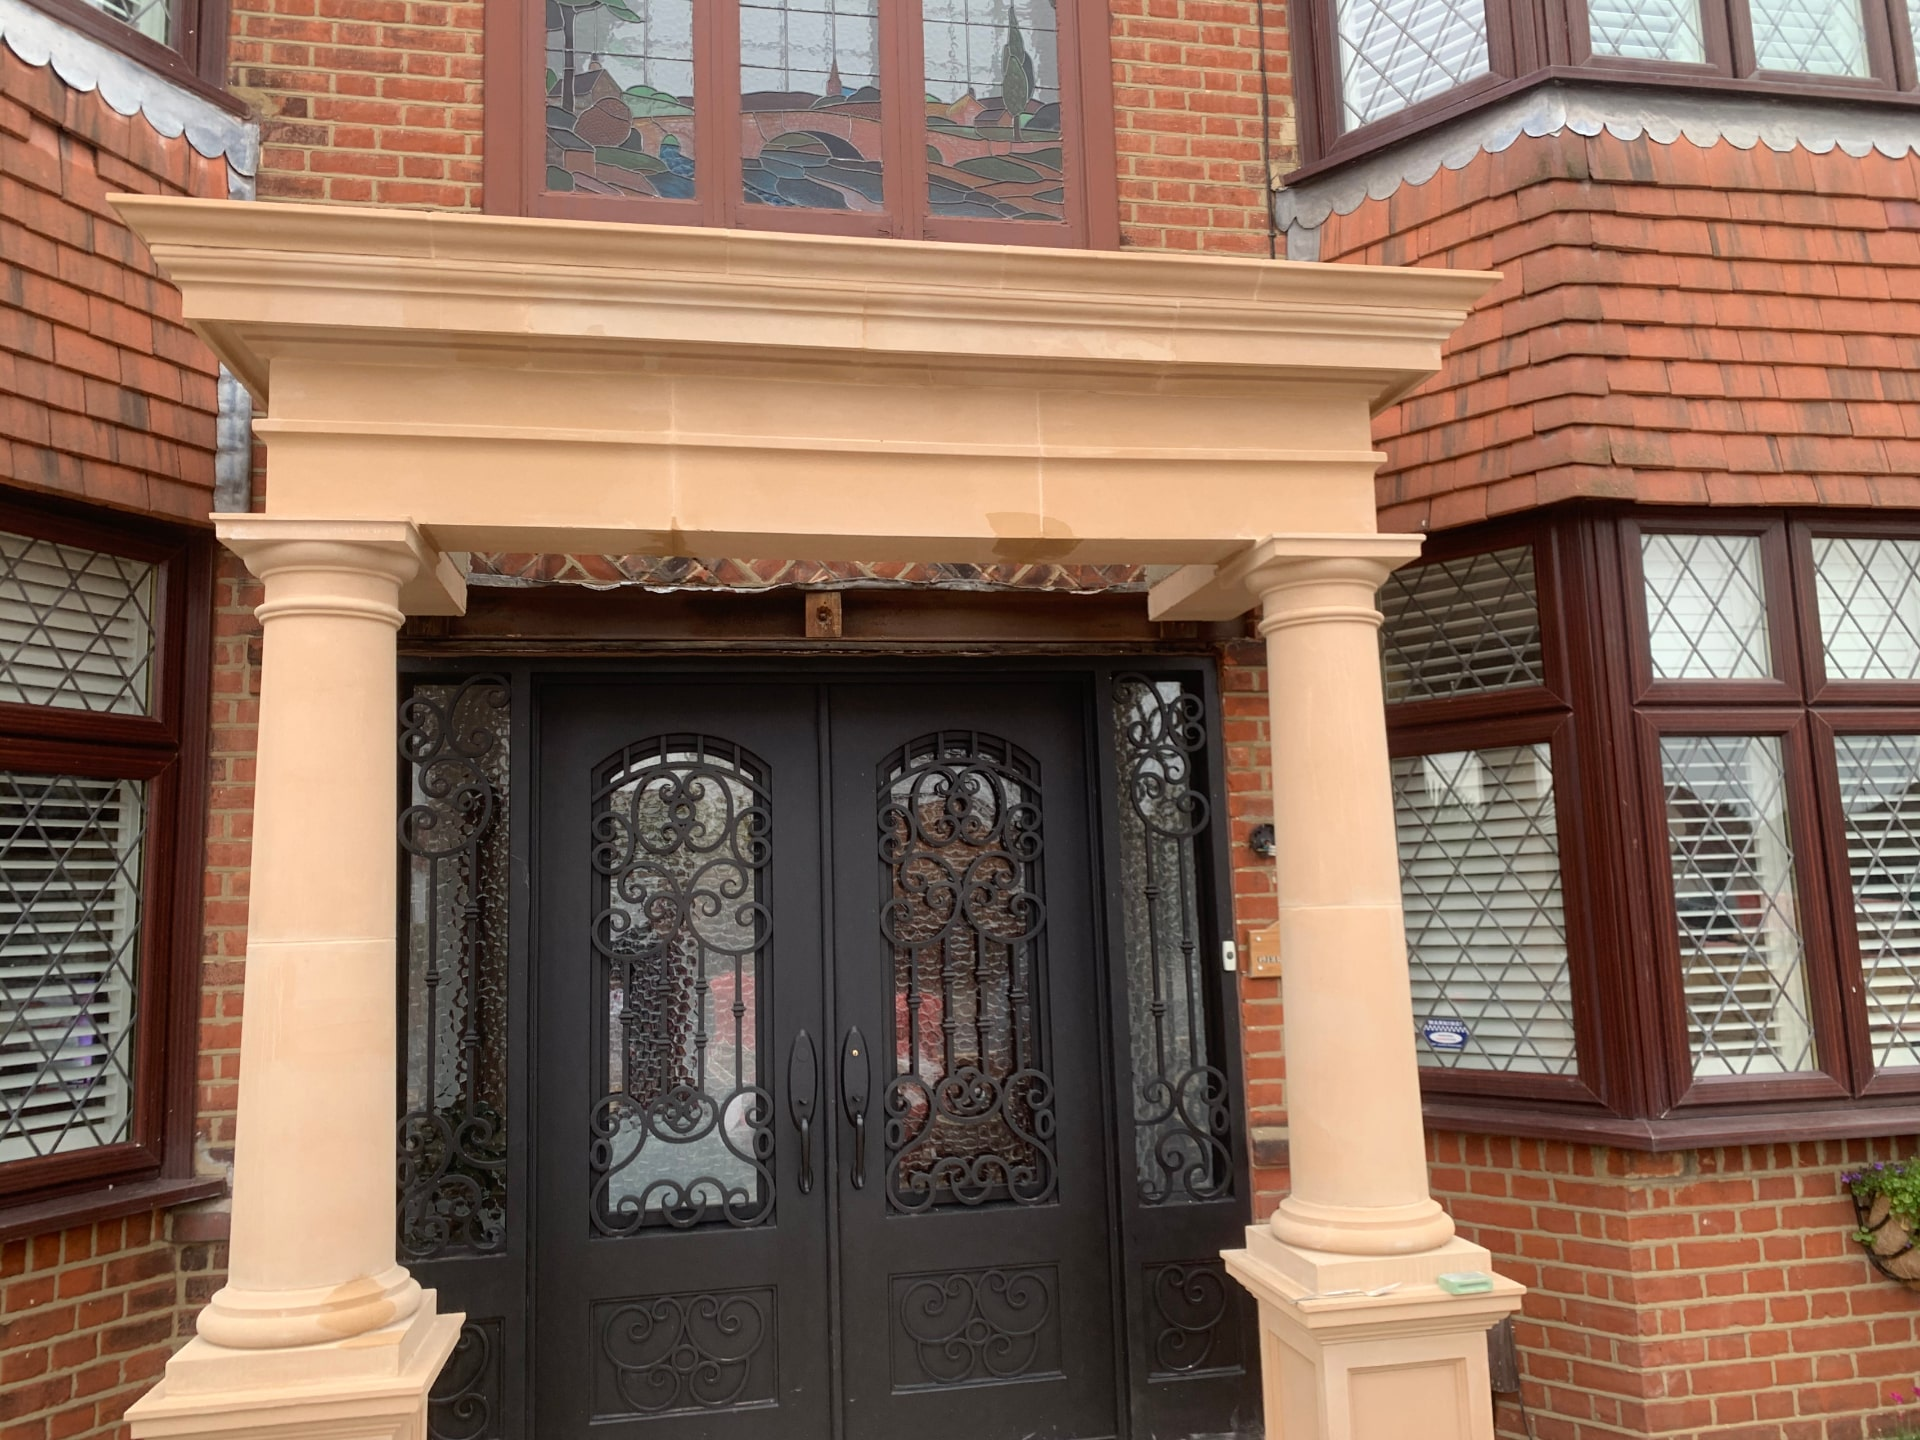 Visually striking stone portico porch designs and built in the uk by malling masonry add style & value. Creating a wow factor, beautify your home and makes for an excellent staging space